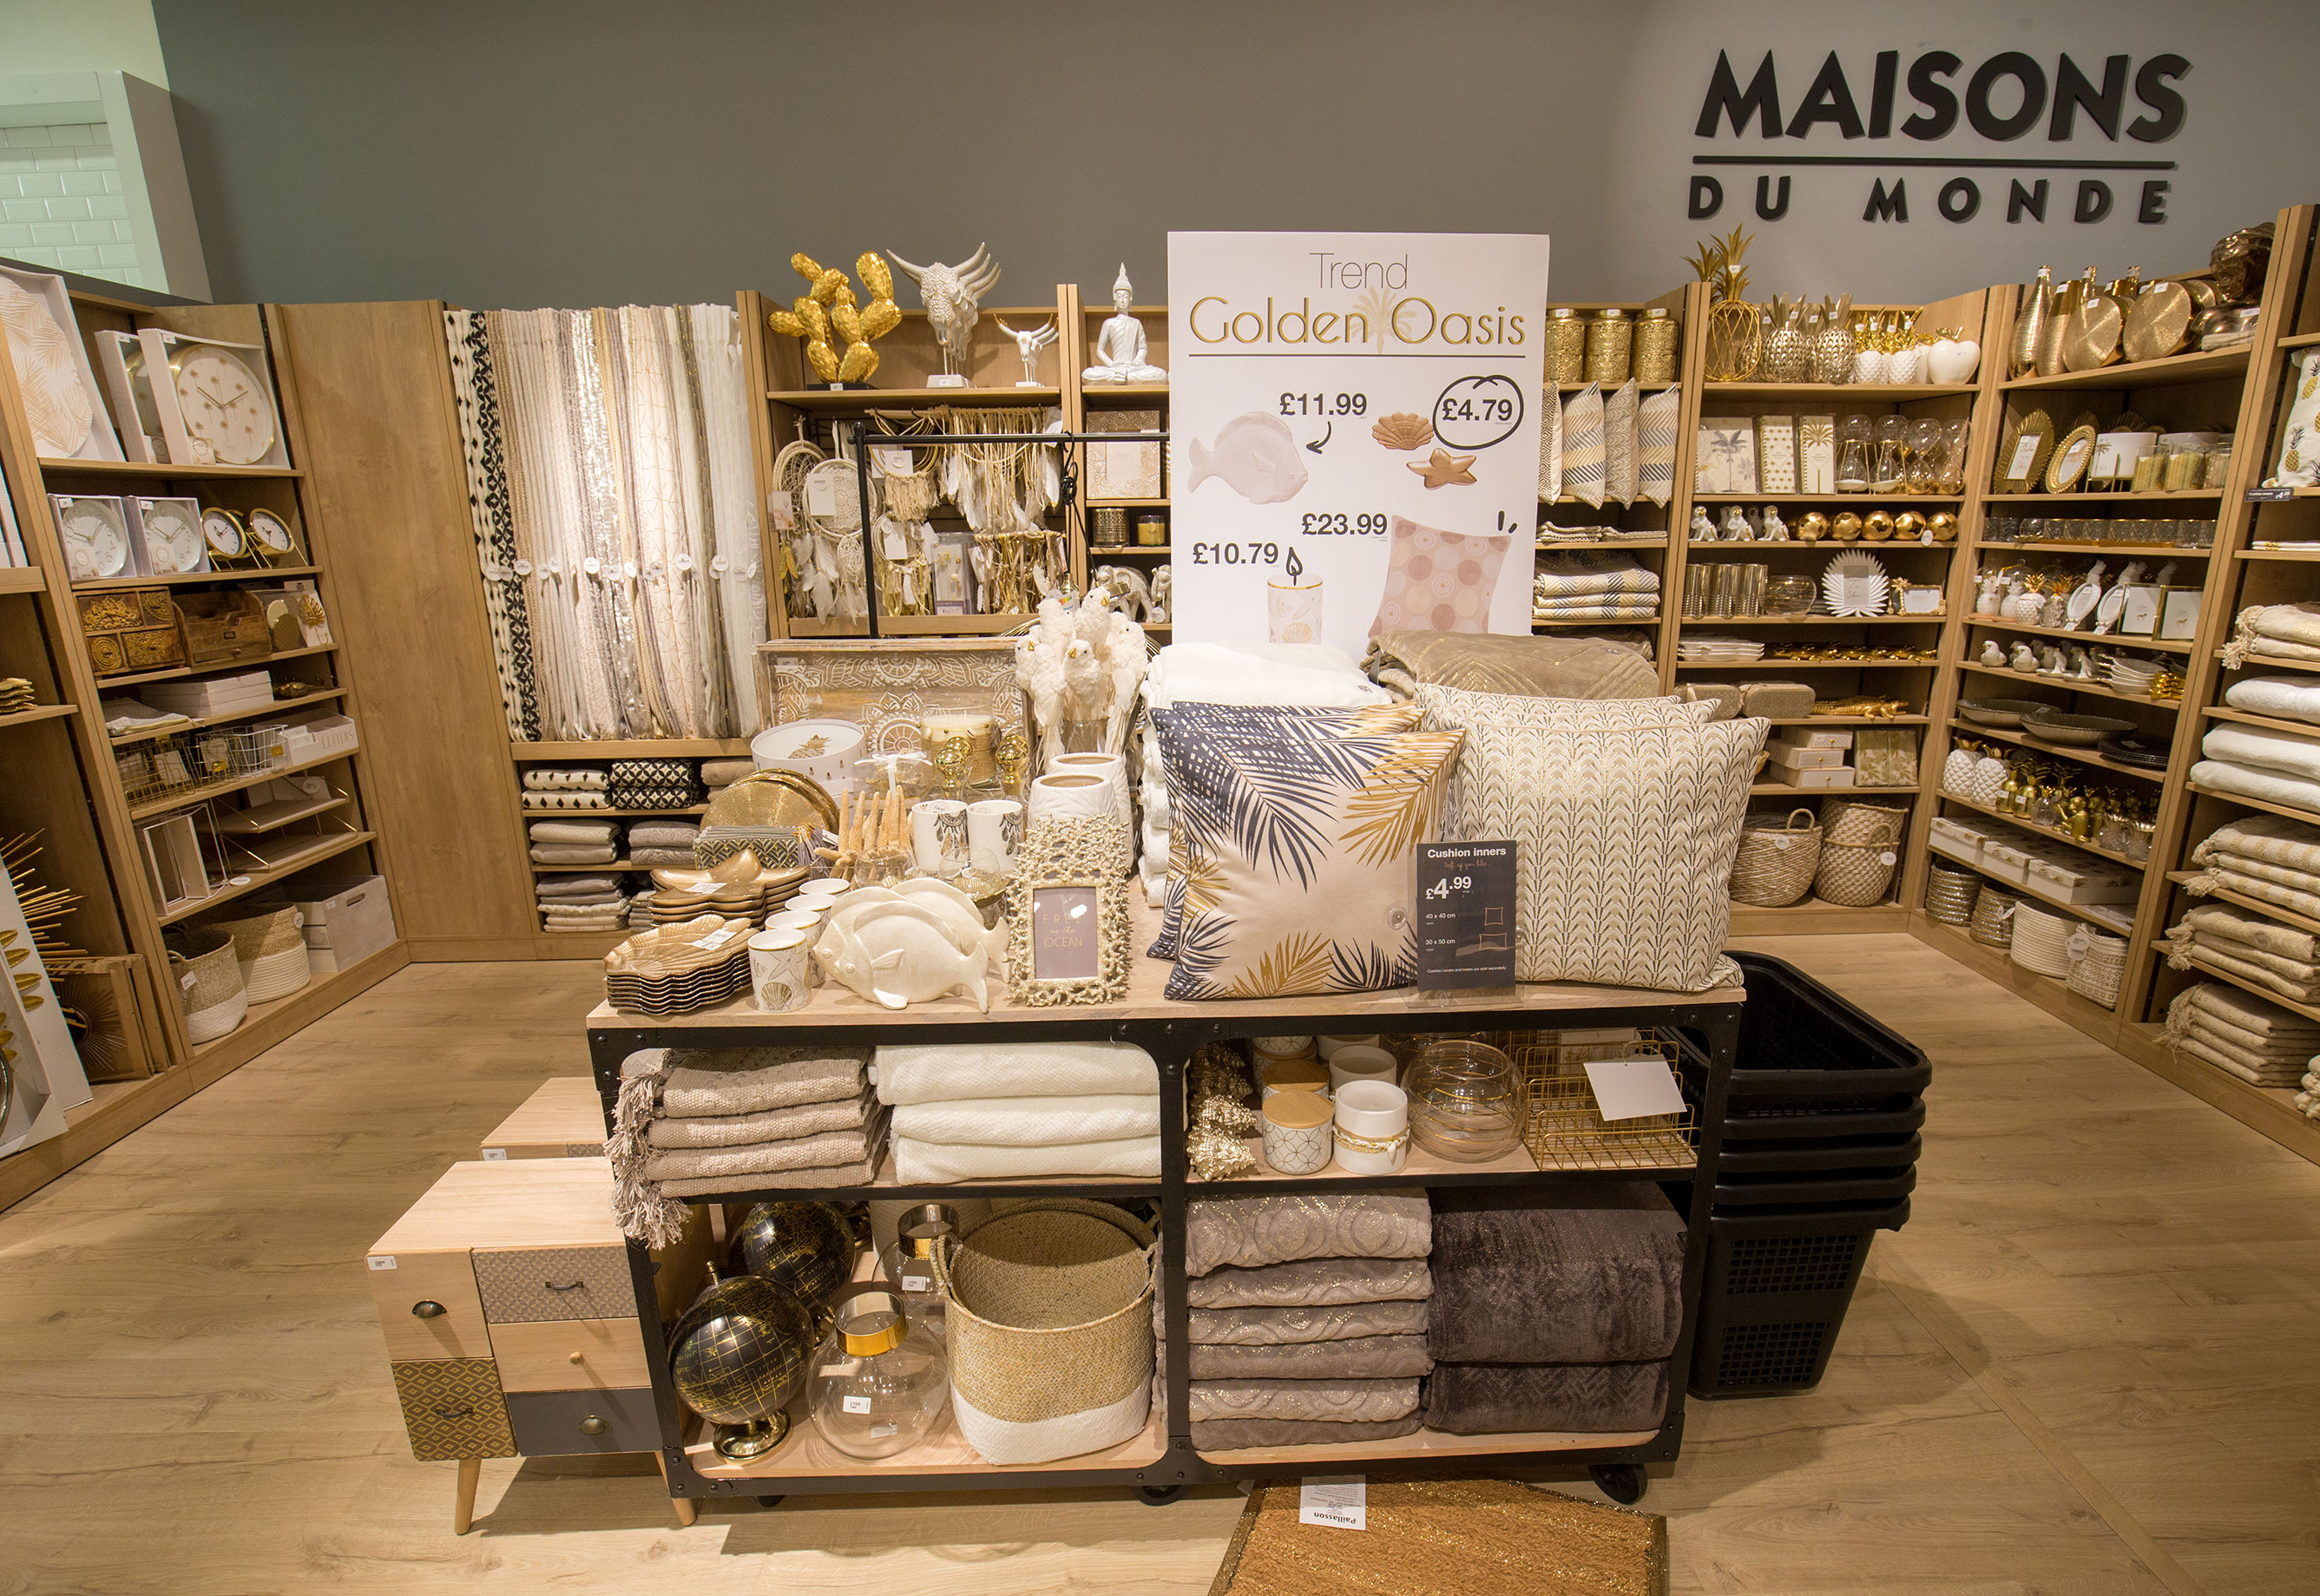 Maisons du monde opened 3 concessions in london westfield for Maison du monde vendee